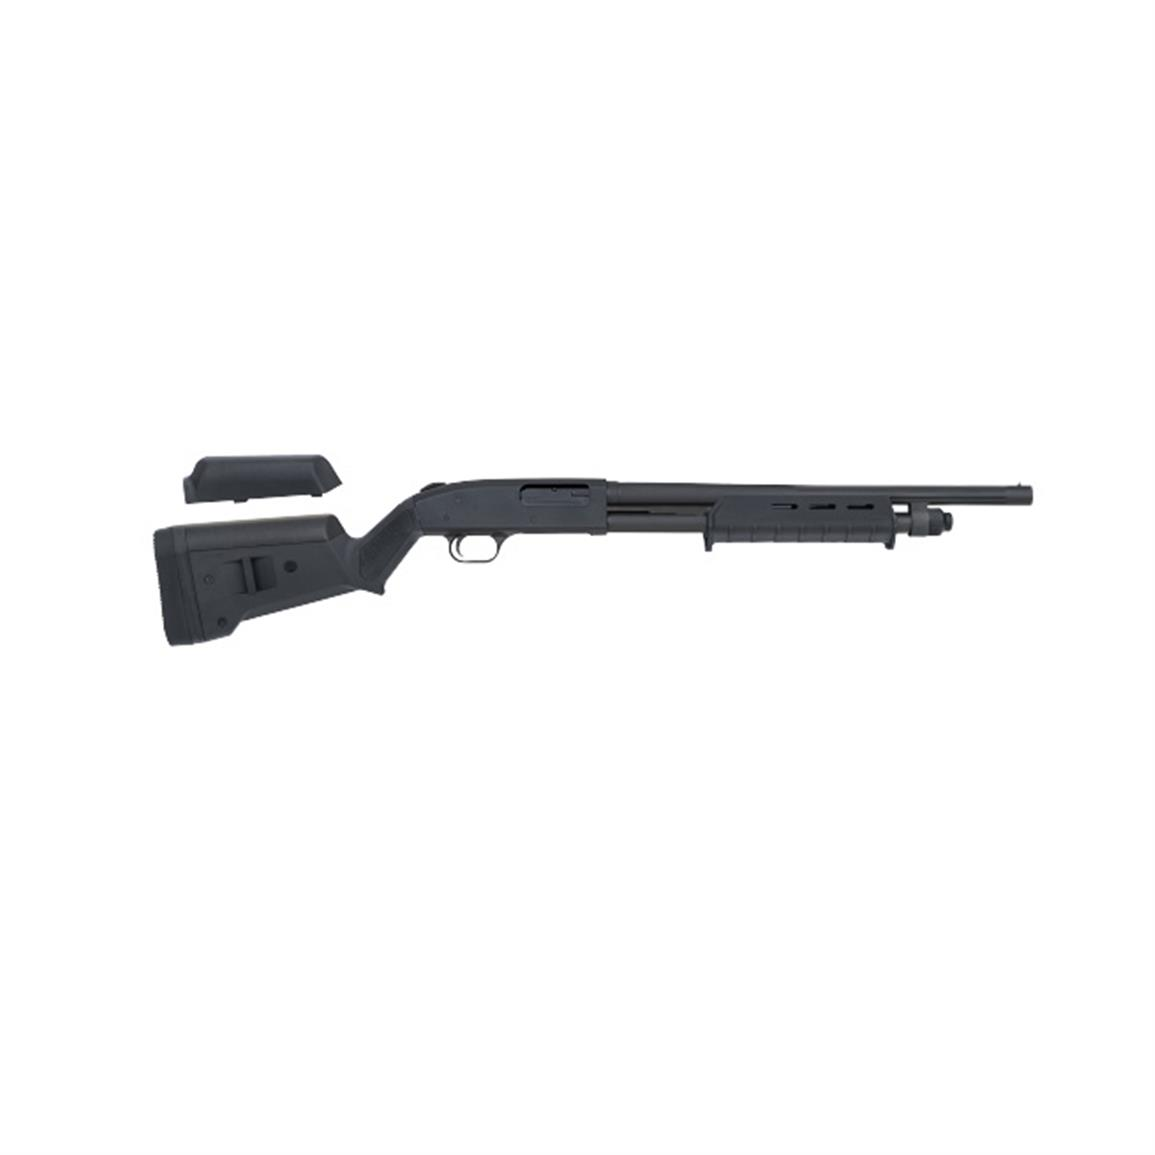 Mossberg 590A1 Magpul Series, Pump, 12 Gauge, 51417, 015813514170, 18.5 inch Barrel